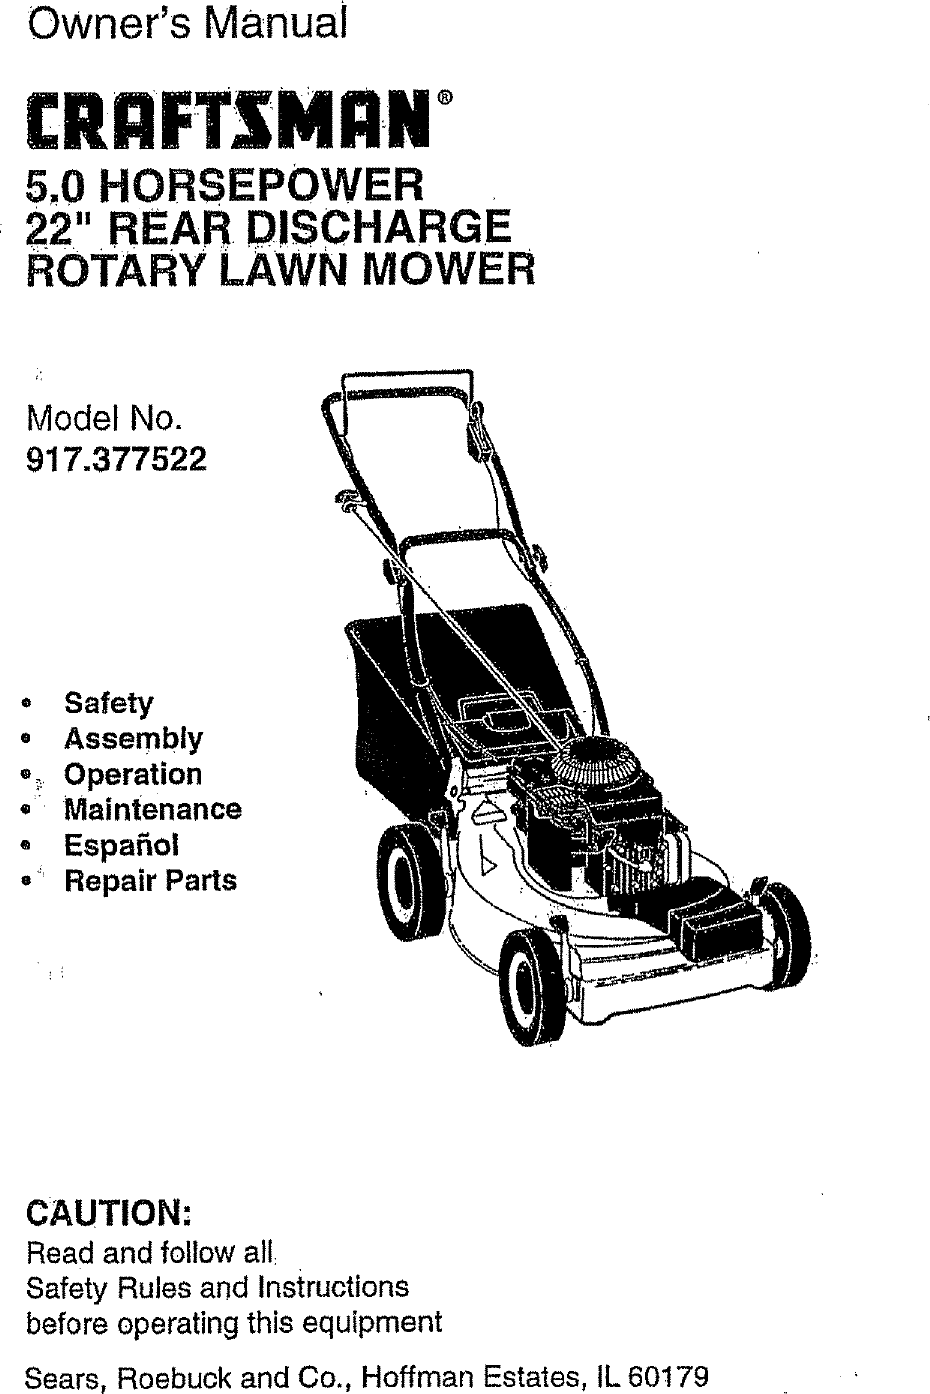 Craftsman 917377522 User Manual ROTARY MOWER Manuals And